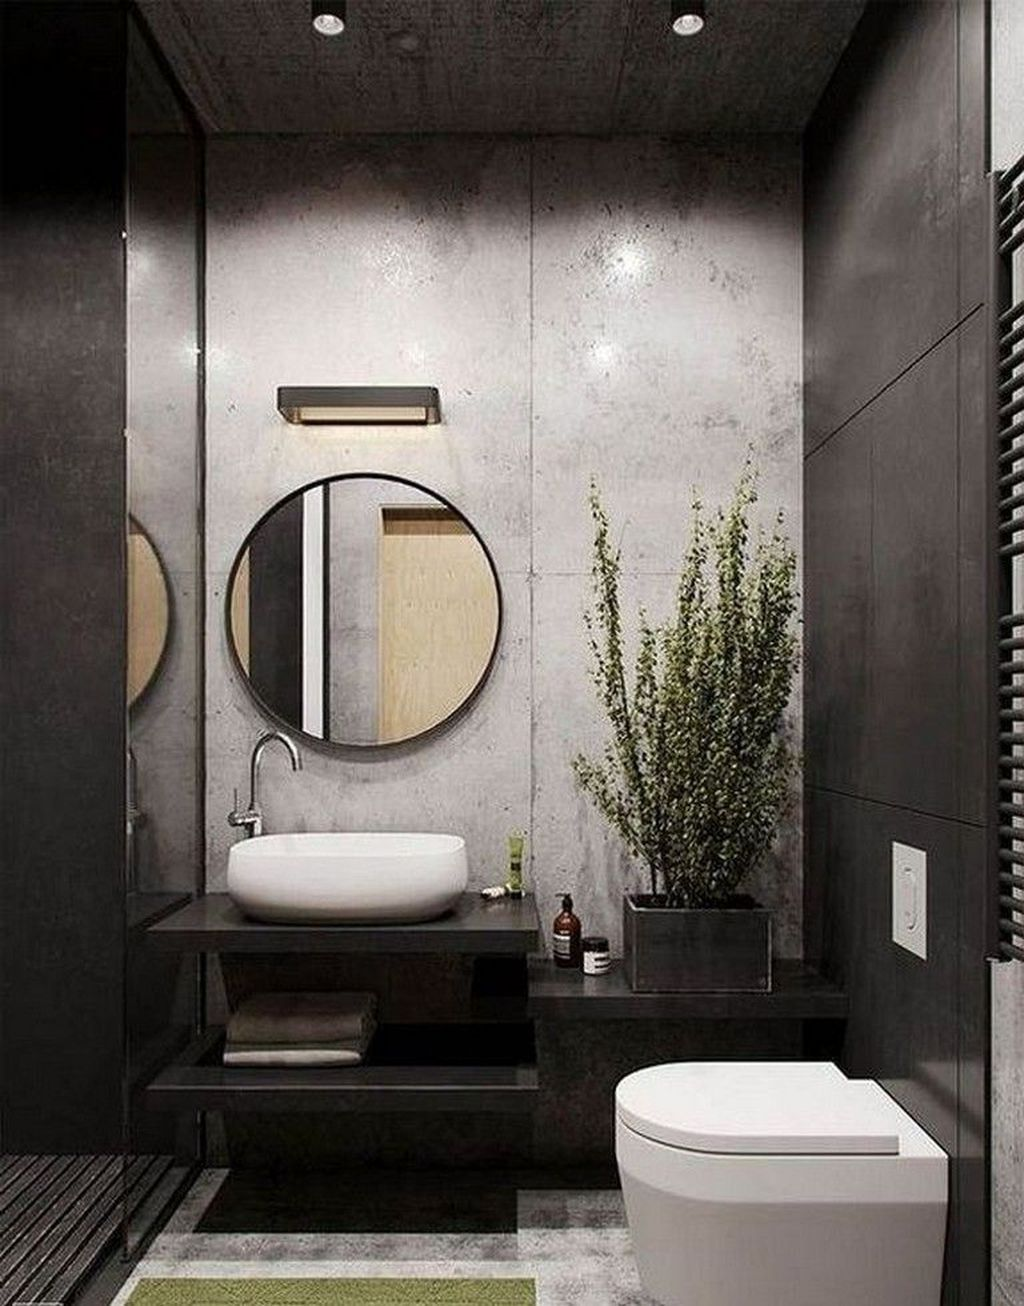 Awesome 37 Modern Apartment Bathroom Designs Ideas For Men More At Https Homyfeed Com 2019 03 24 37 Mo Living Room Loft Small Bathroom Remodel Toilet Design